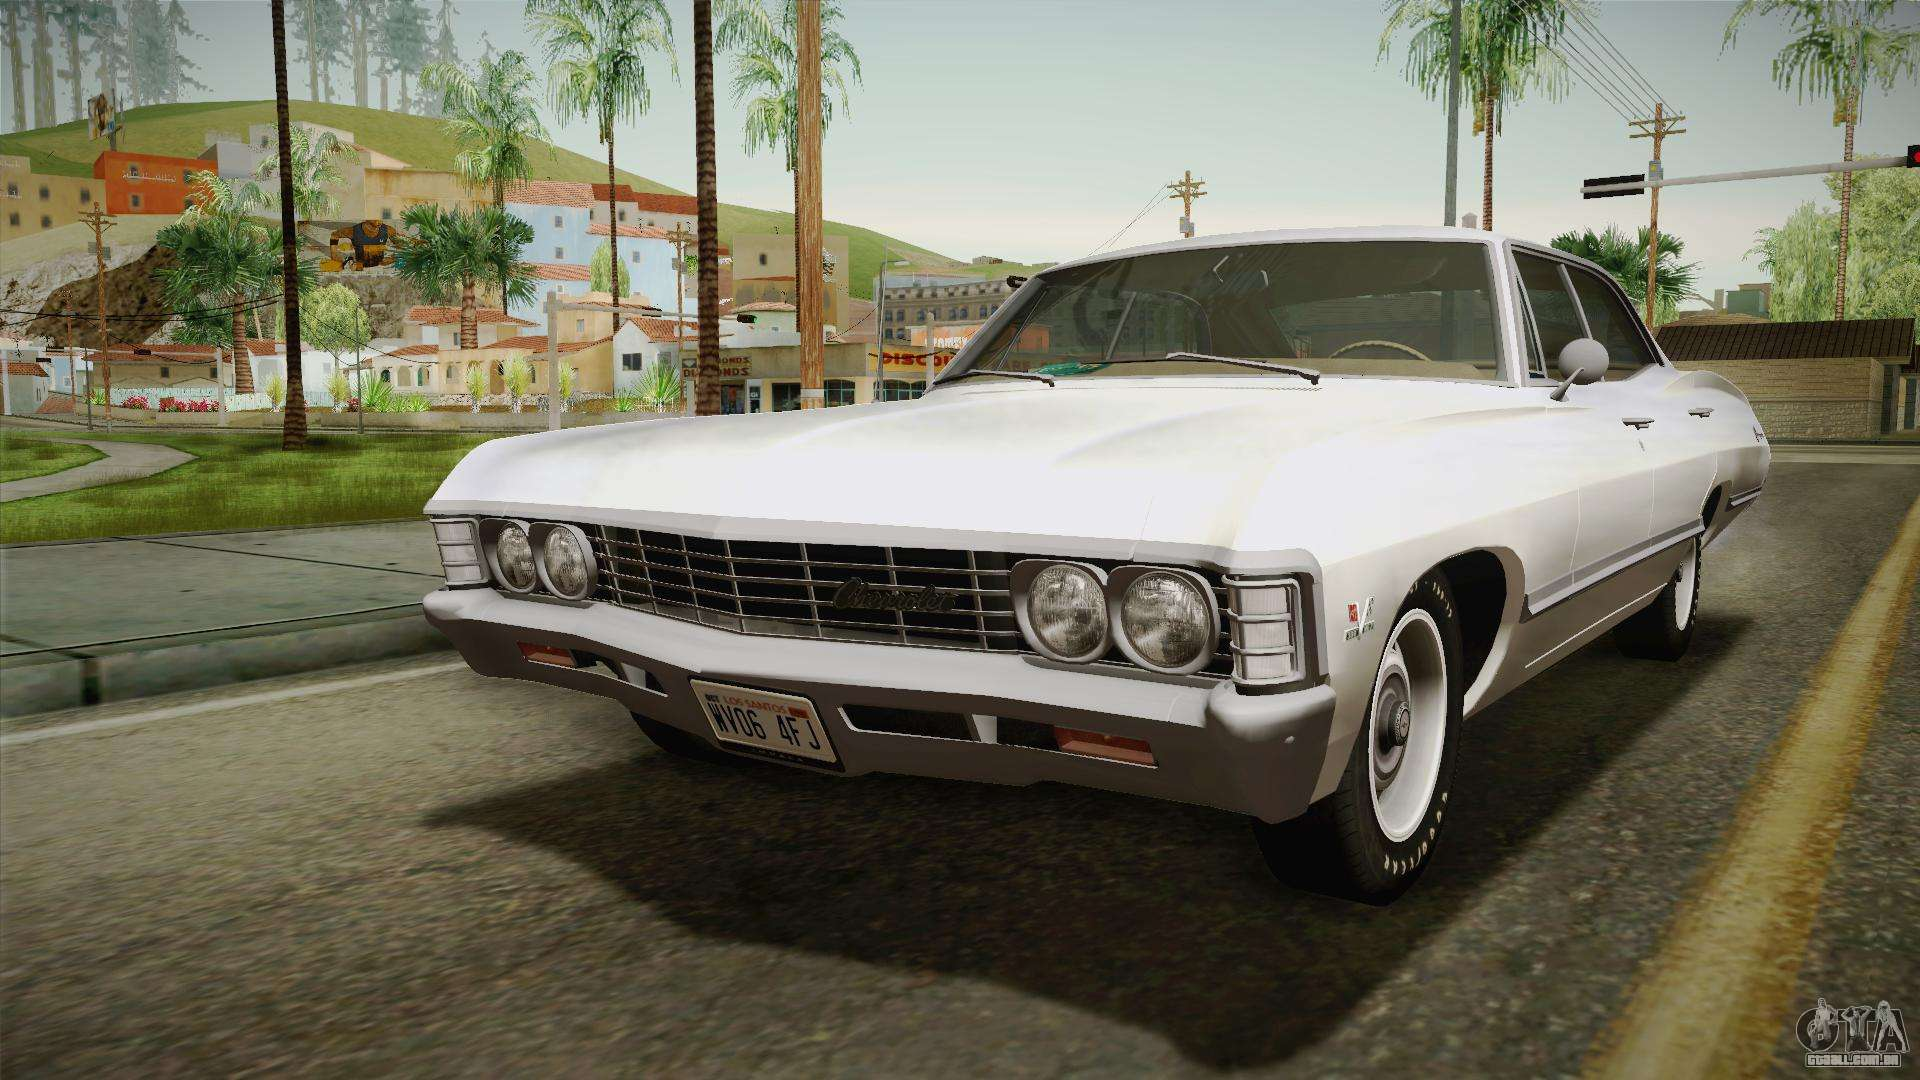 Chevrolet Impala Sport Sedan 396 Turbo Jet 1967 Para Gta San Andreas